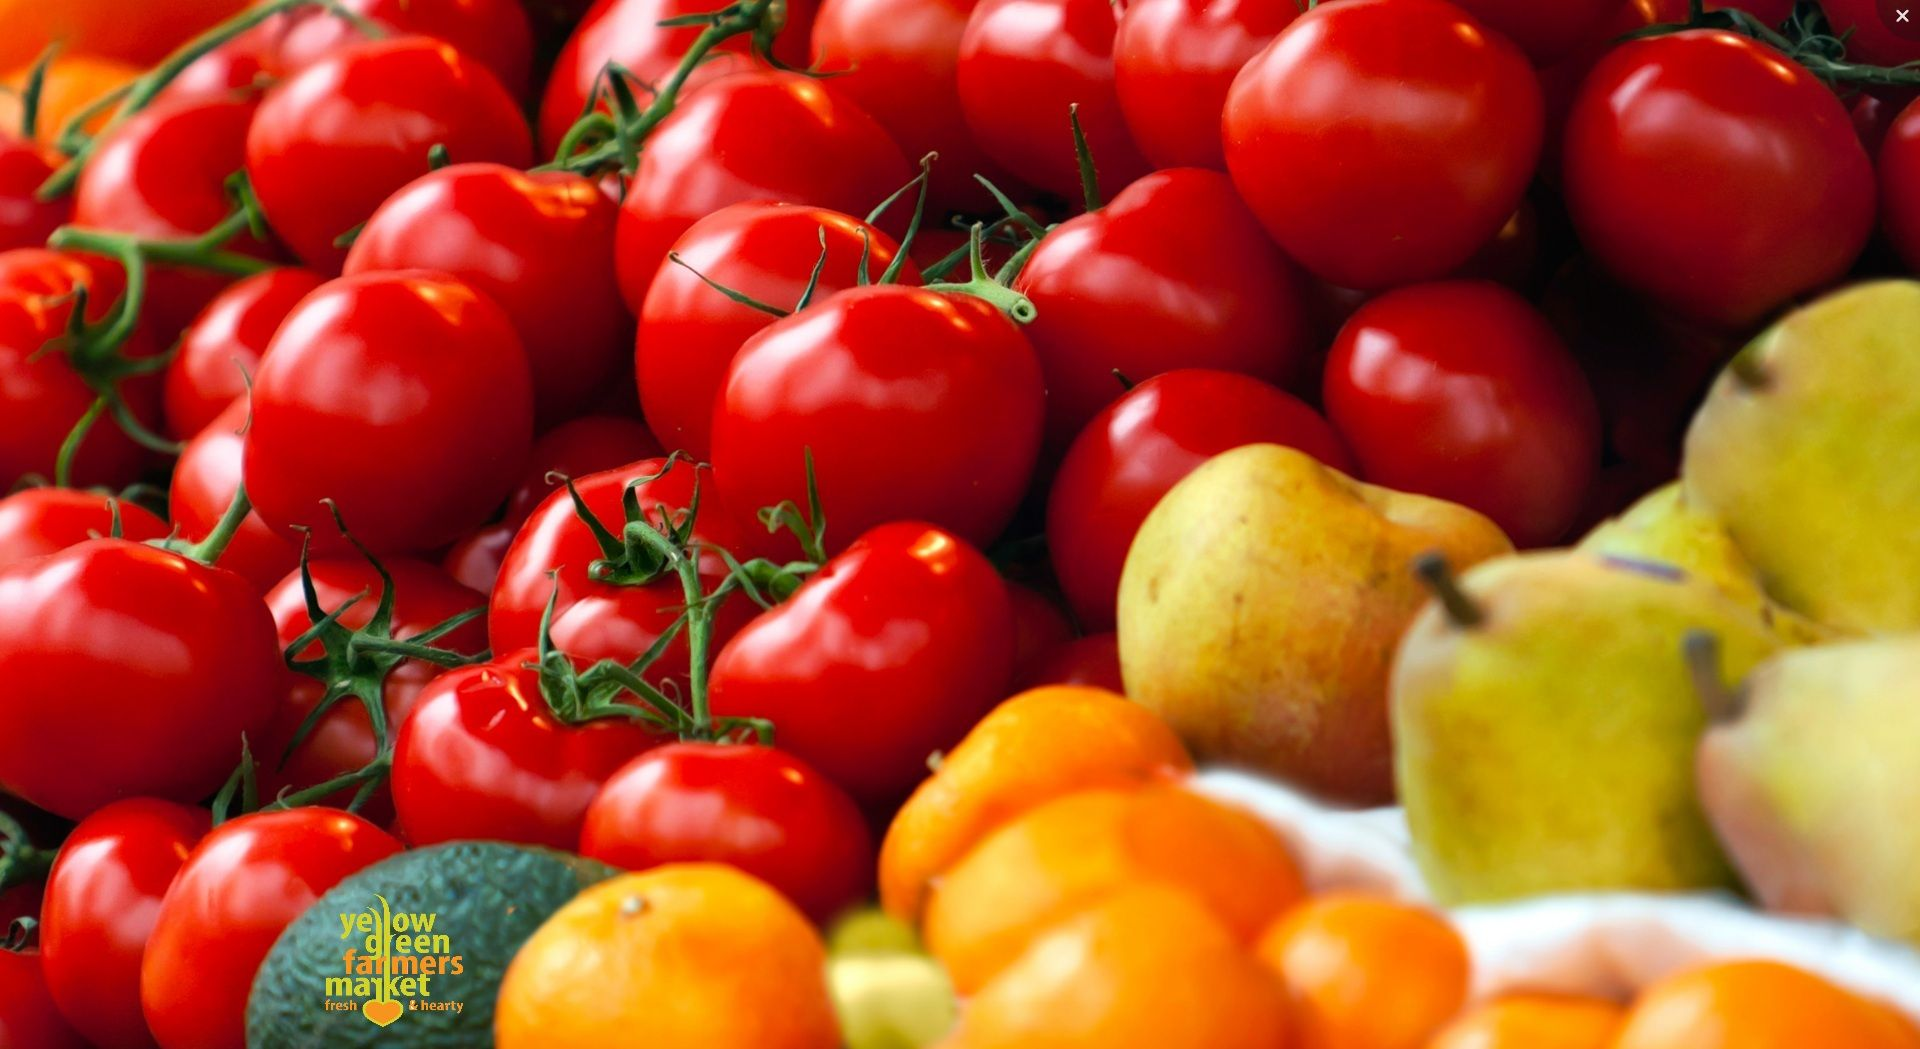 We are a farmers market in Hollywood Florida.